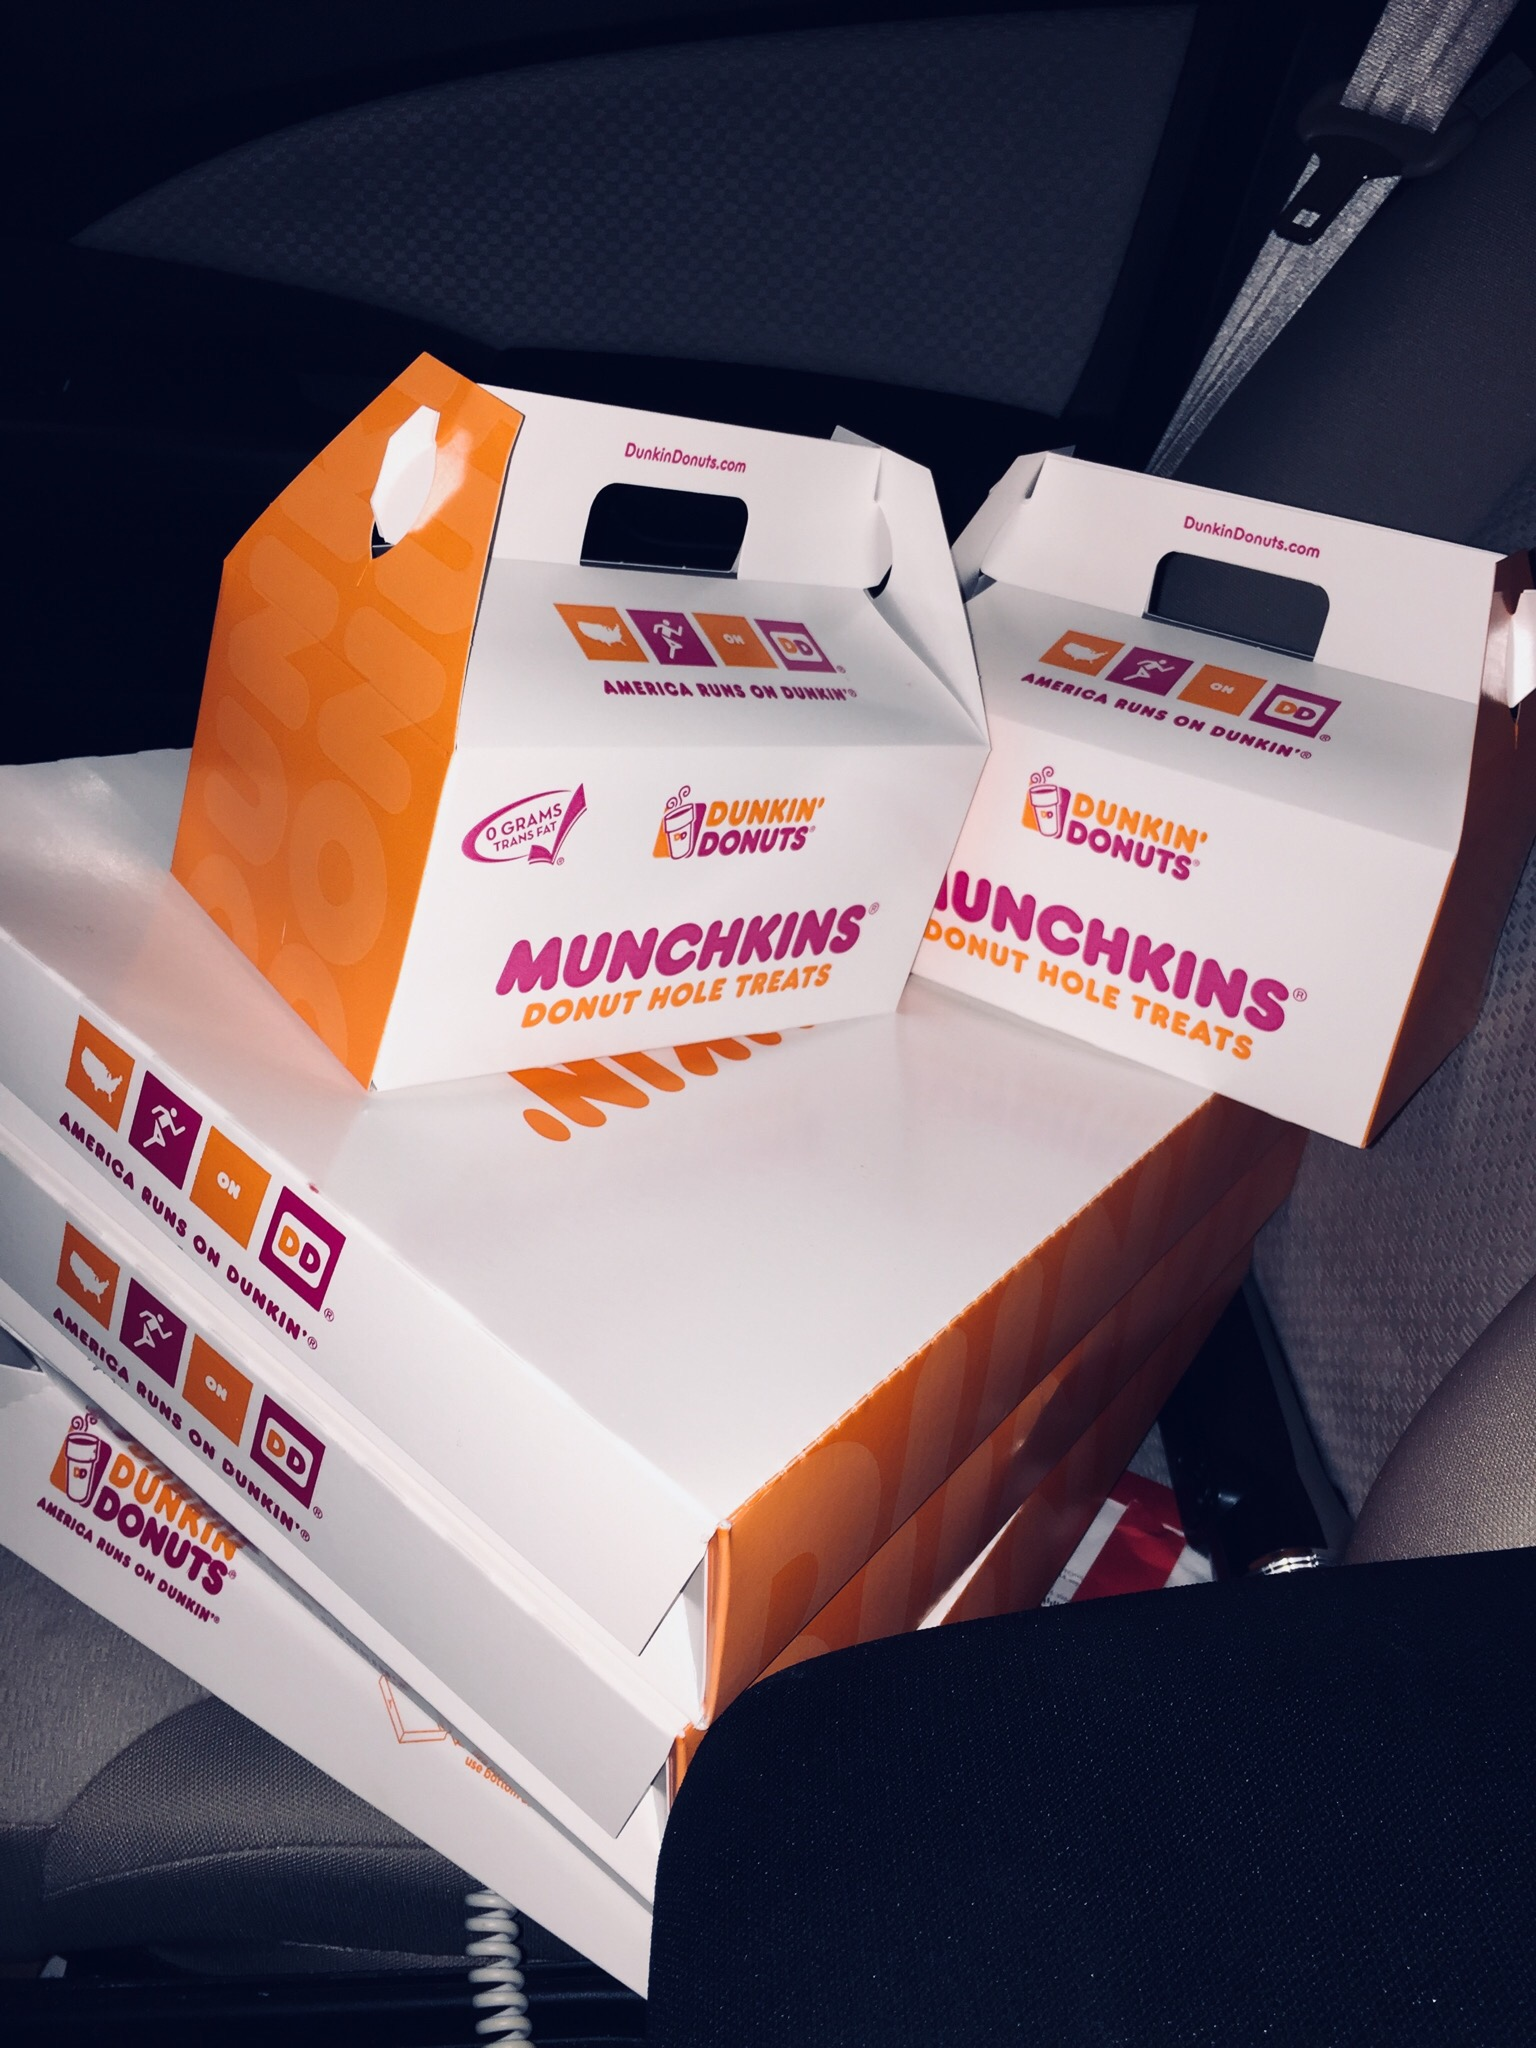 That Time I Got 86 Donuts at Dunkin